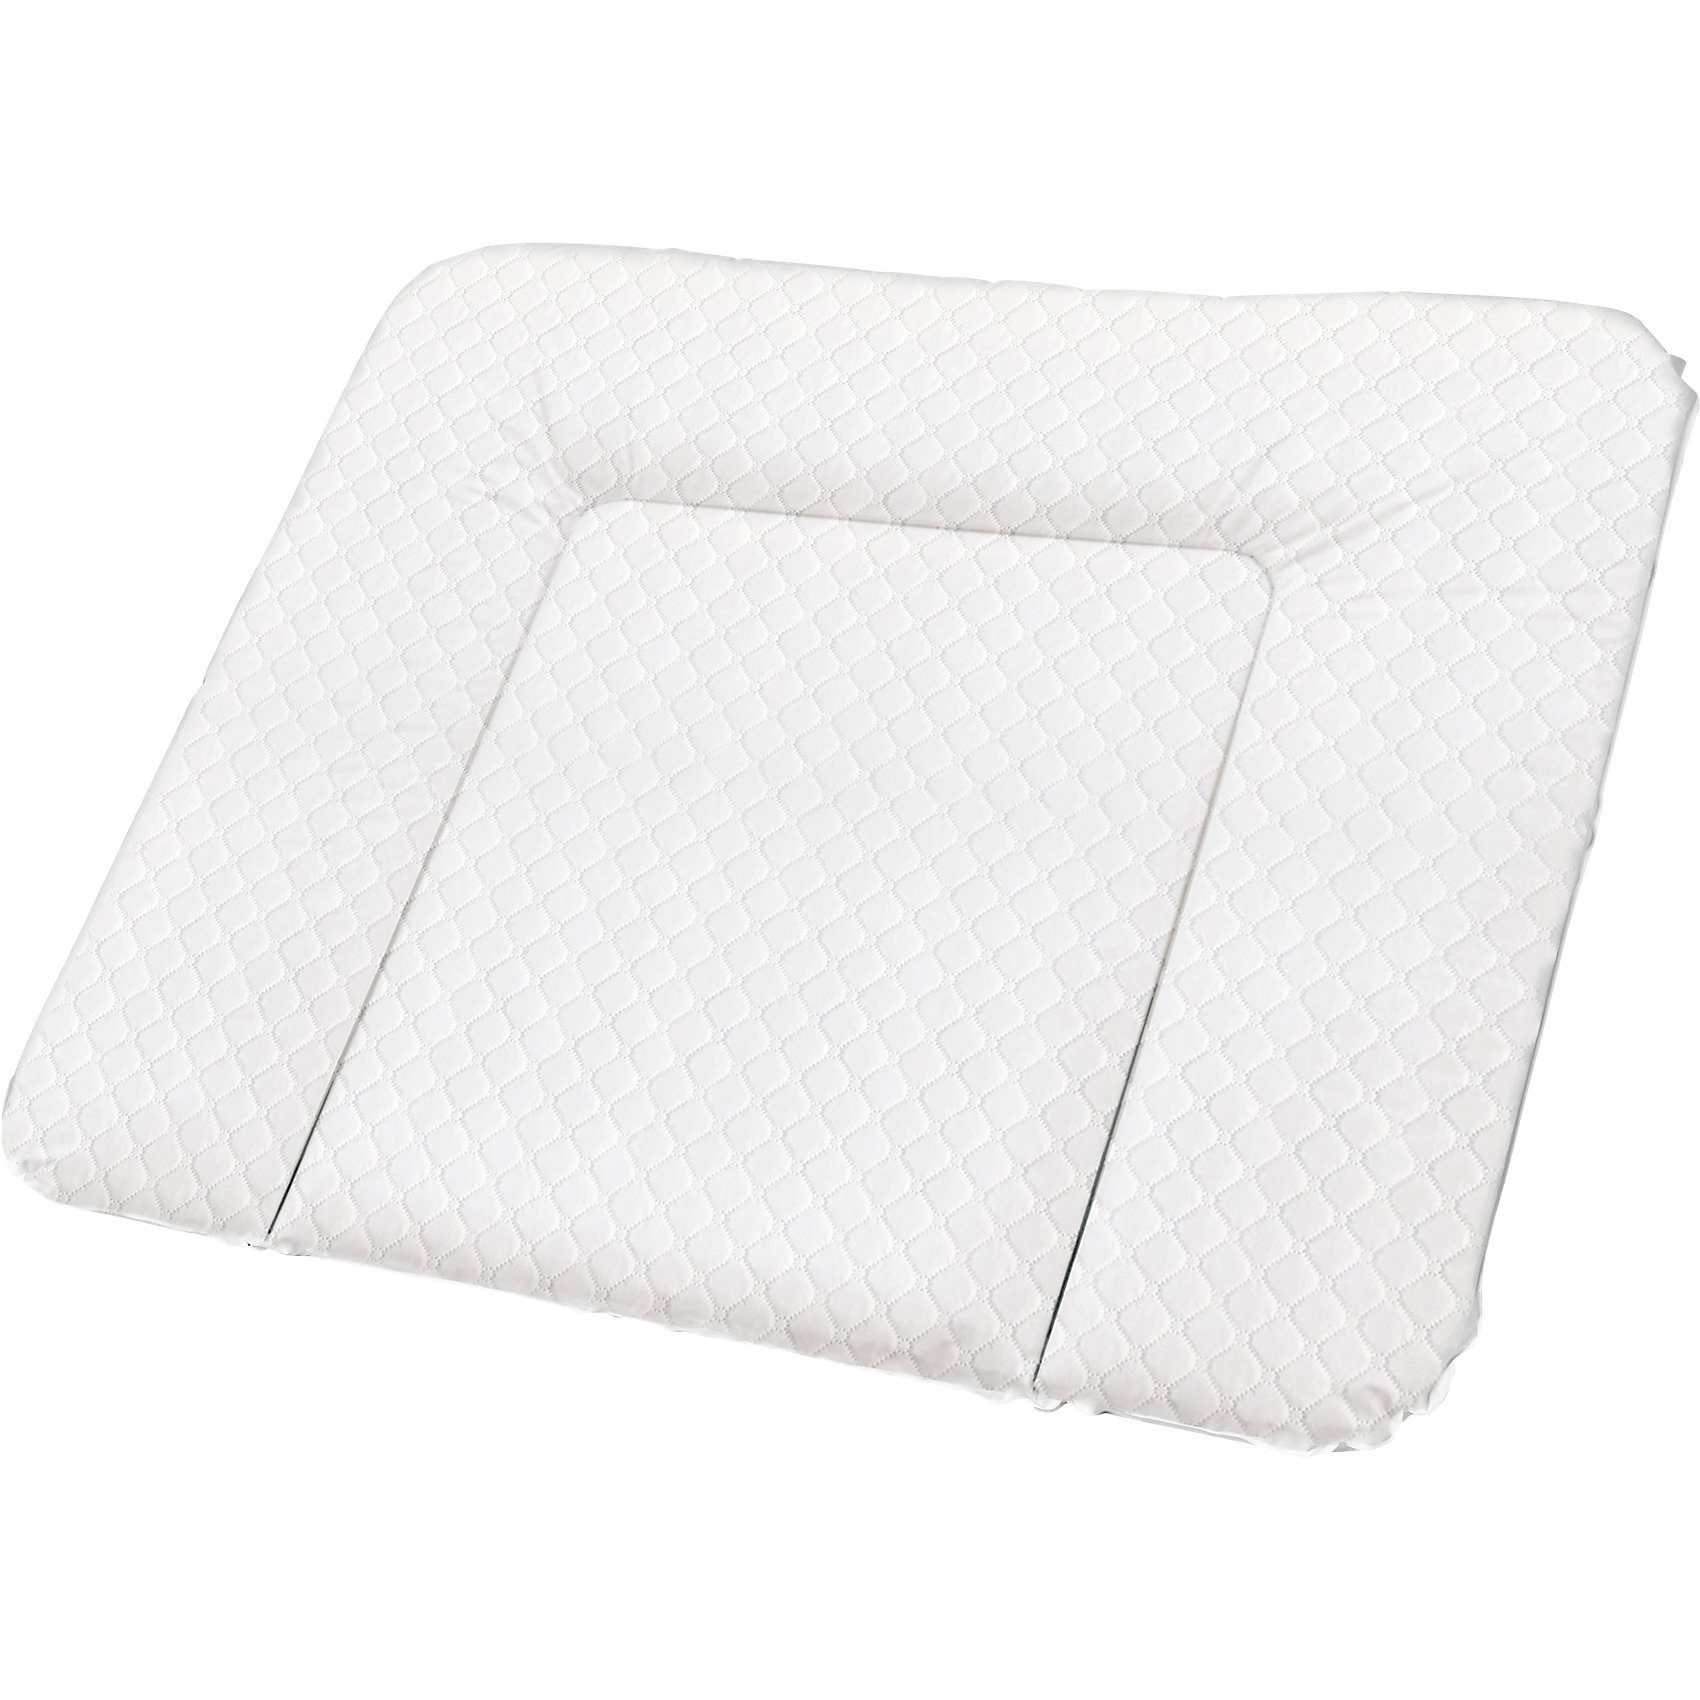 Wickelauflage Kleine Eule In Beige Changing Pads & Covers Blau Oder Rosa High Quality Materials